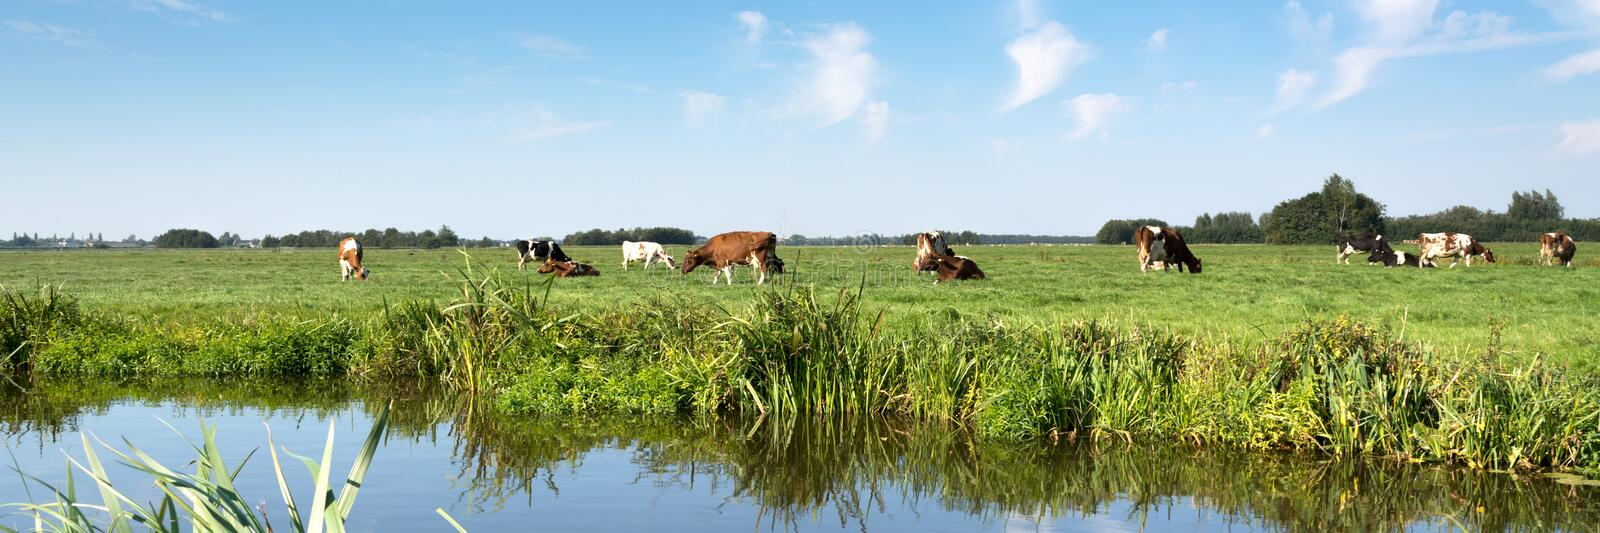 Typical Dutch panorama landscape with cows, grassland, trees, blue sky and white clouds royalty free stock photos